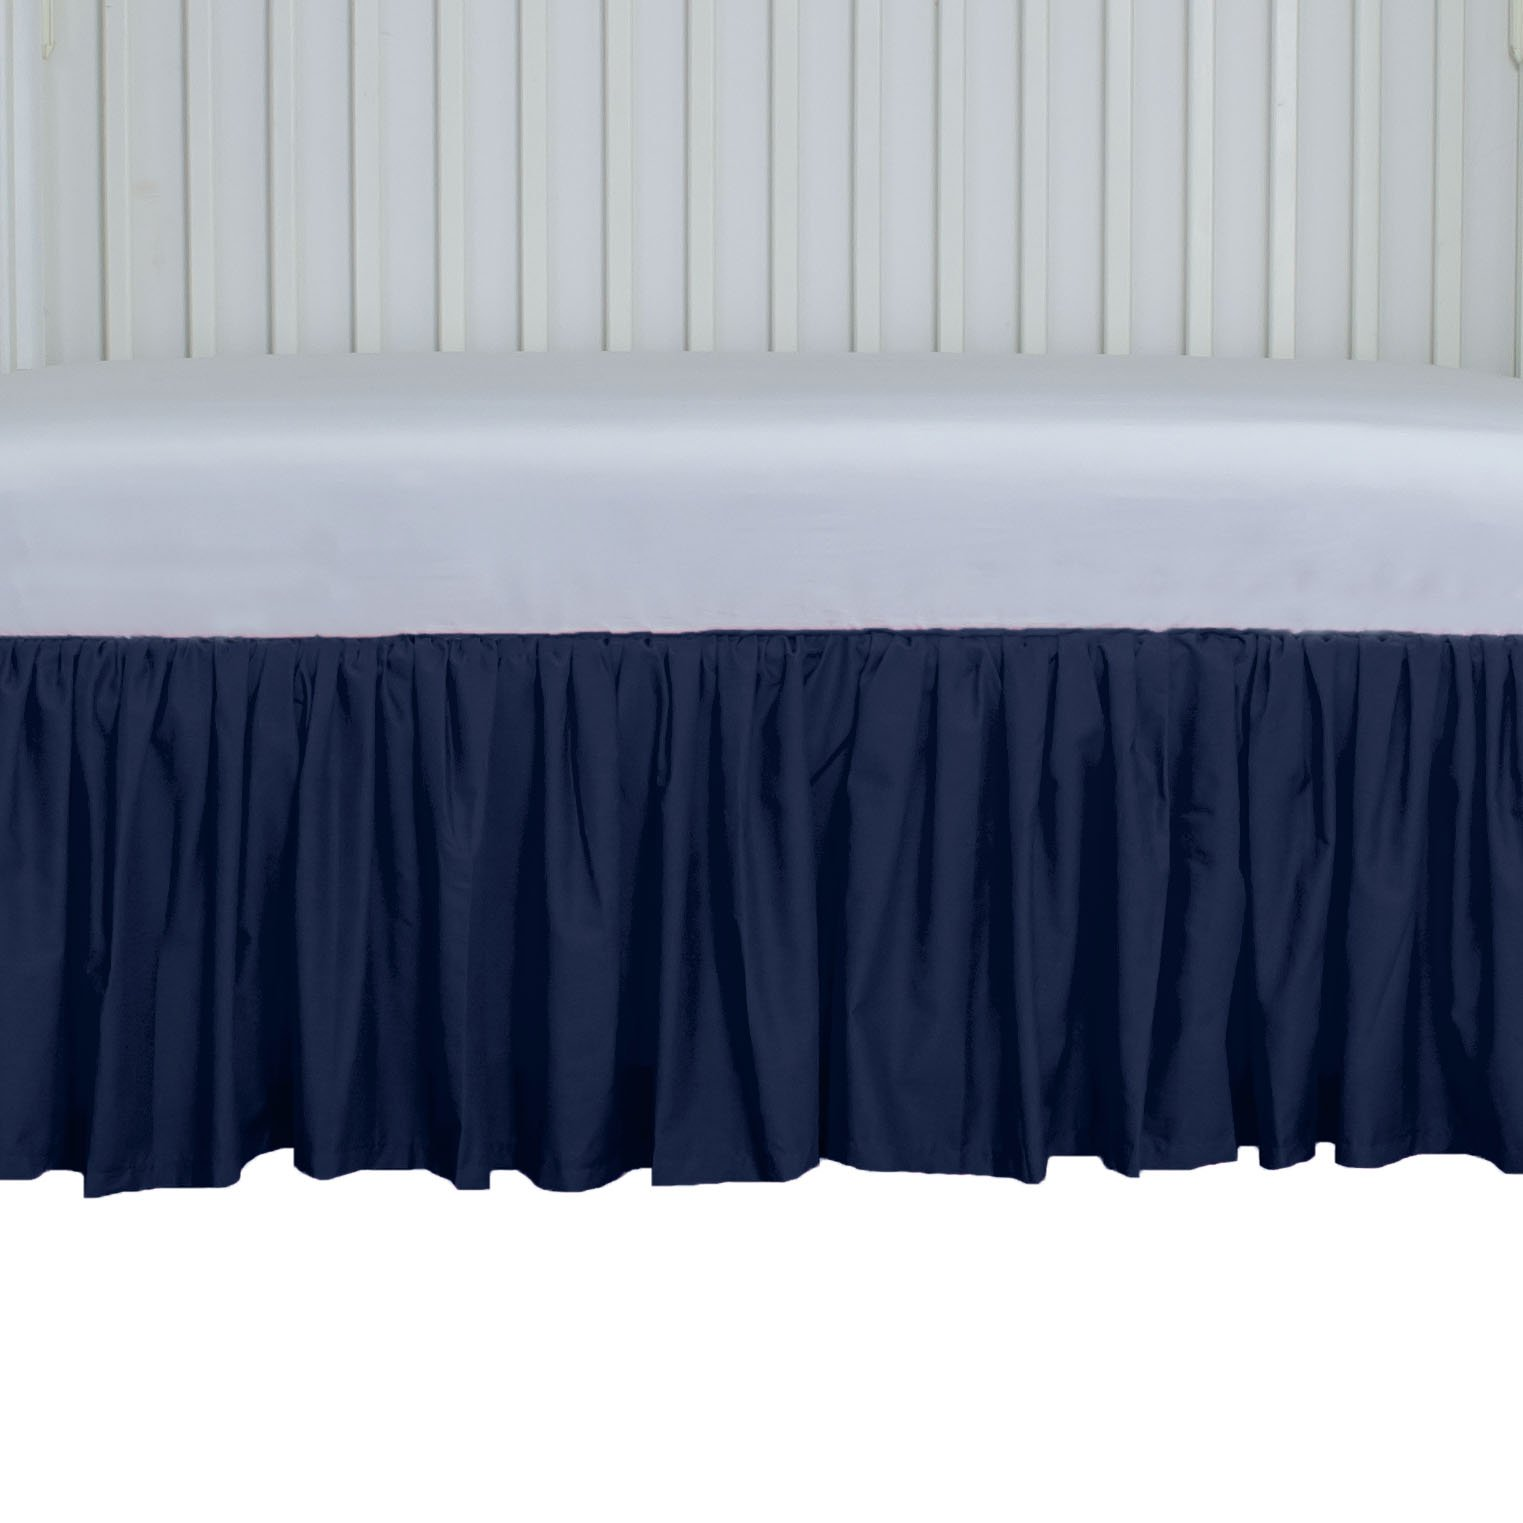 AB Lifestyles Navy Crib Skirt Gathered 15 inches Long 4 Sided by AB Lifestyles